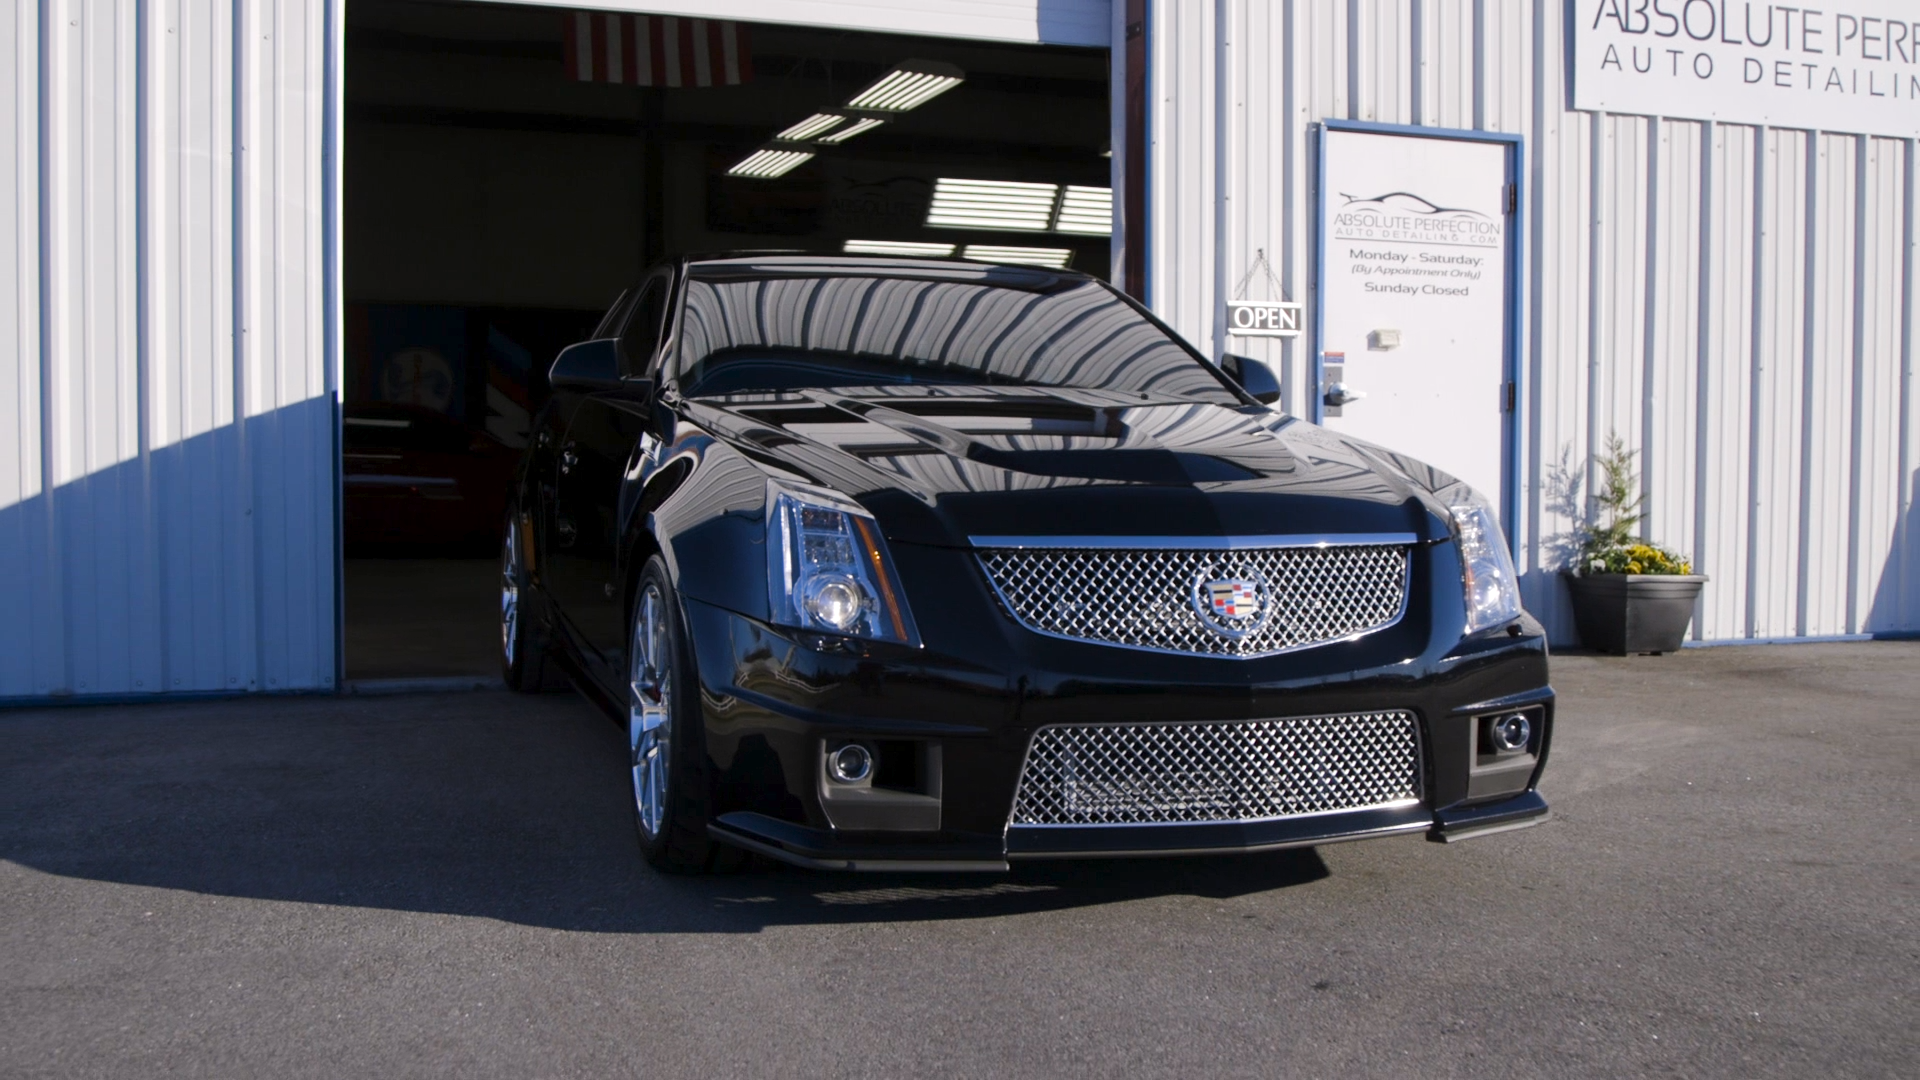 Absolute Perfection Auto Detailing - Cadillac CTSV